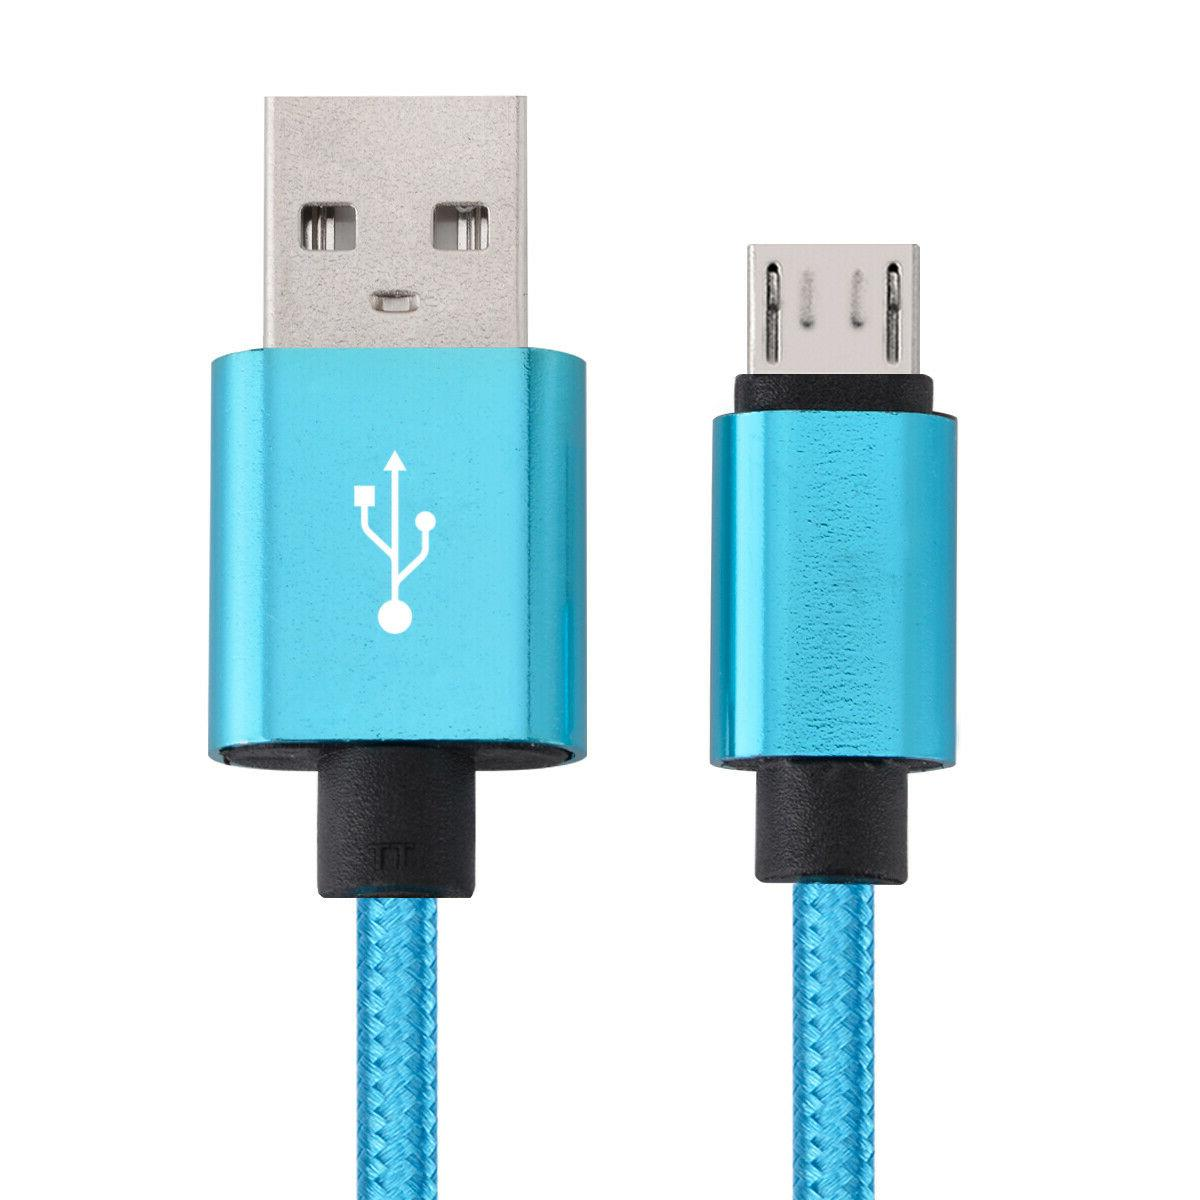 5-Pack Micro USB Charger Fast Cable Cord For Samsung